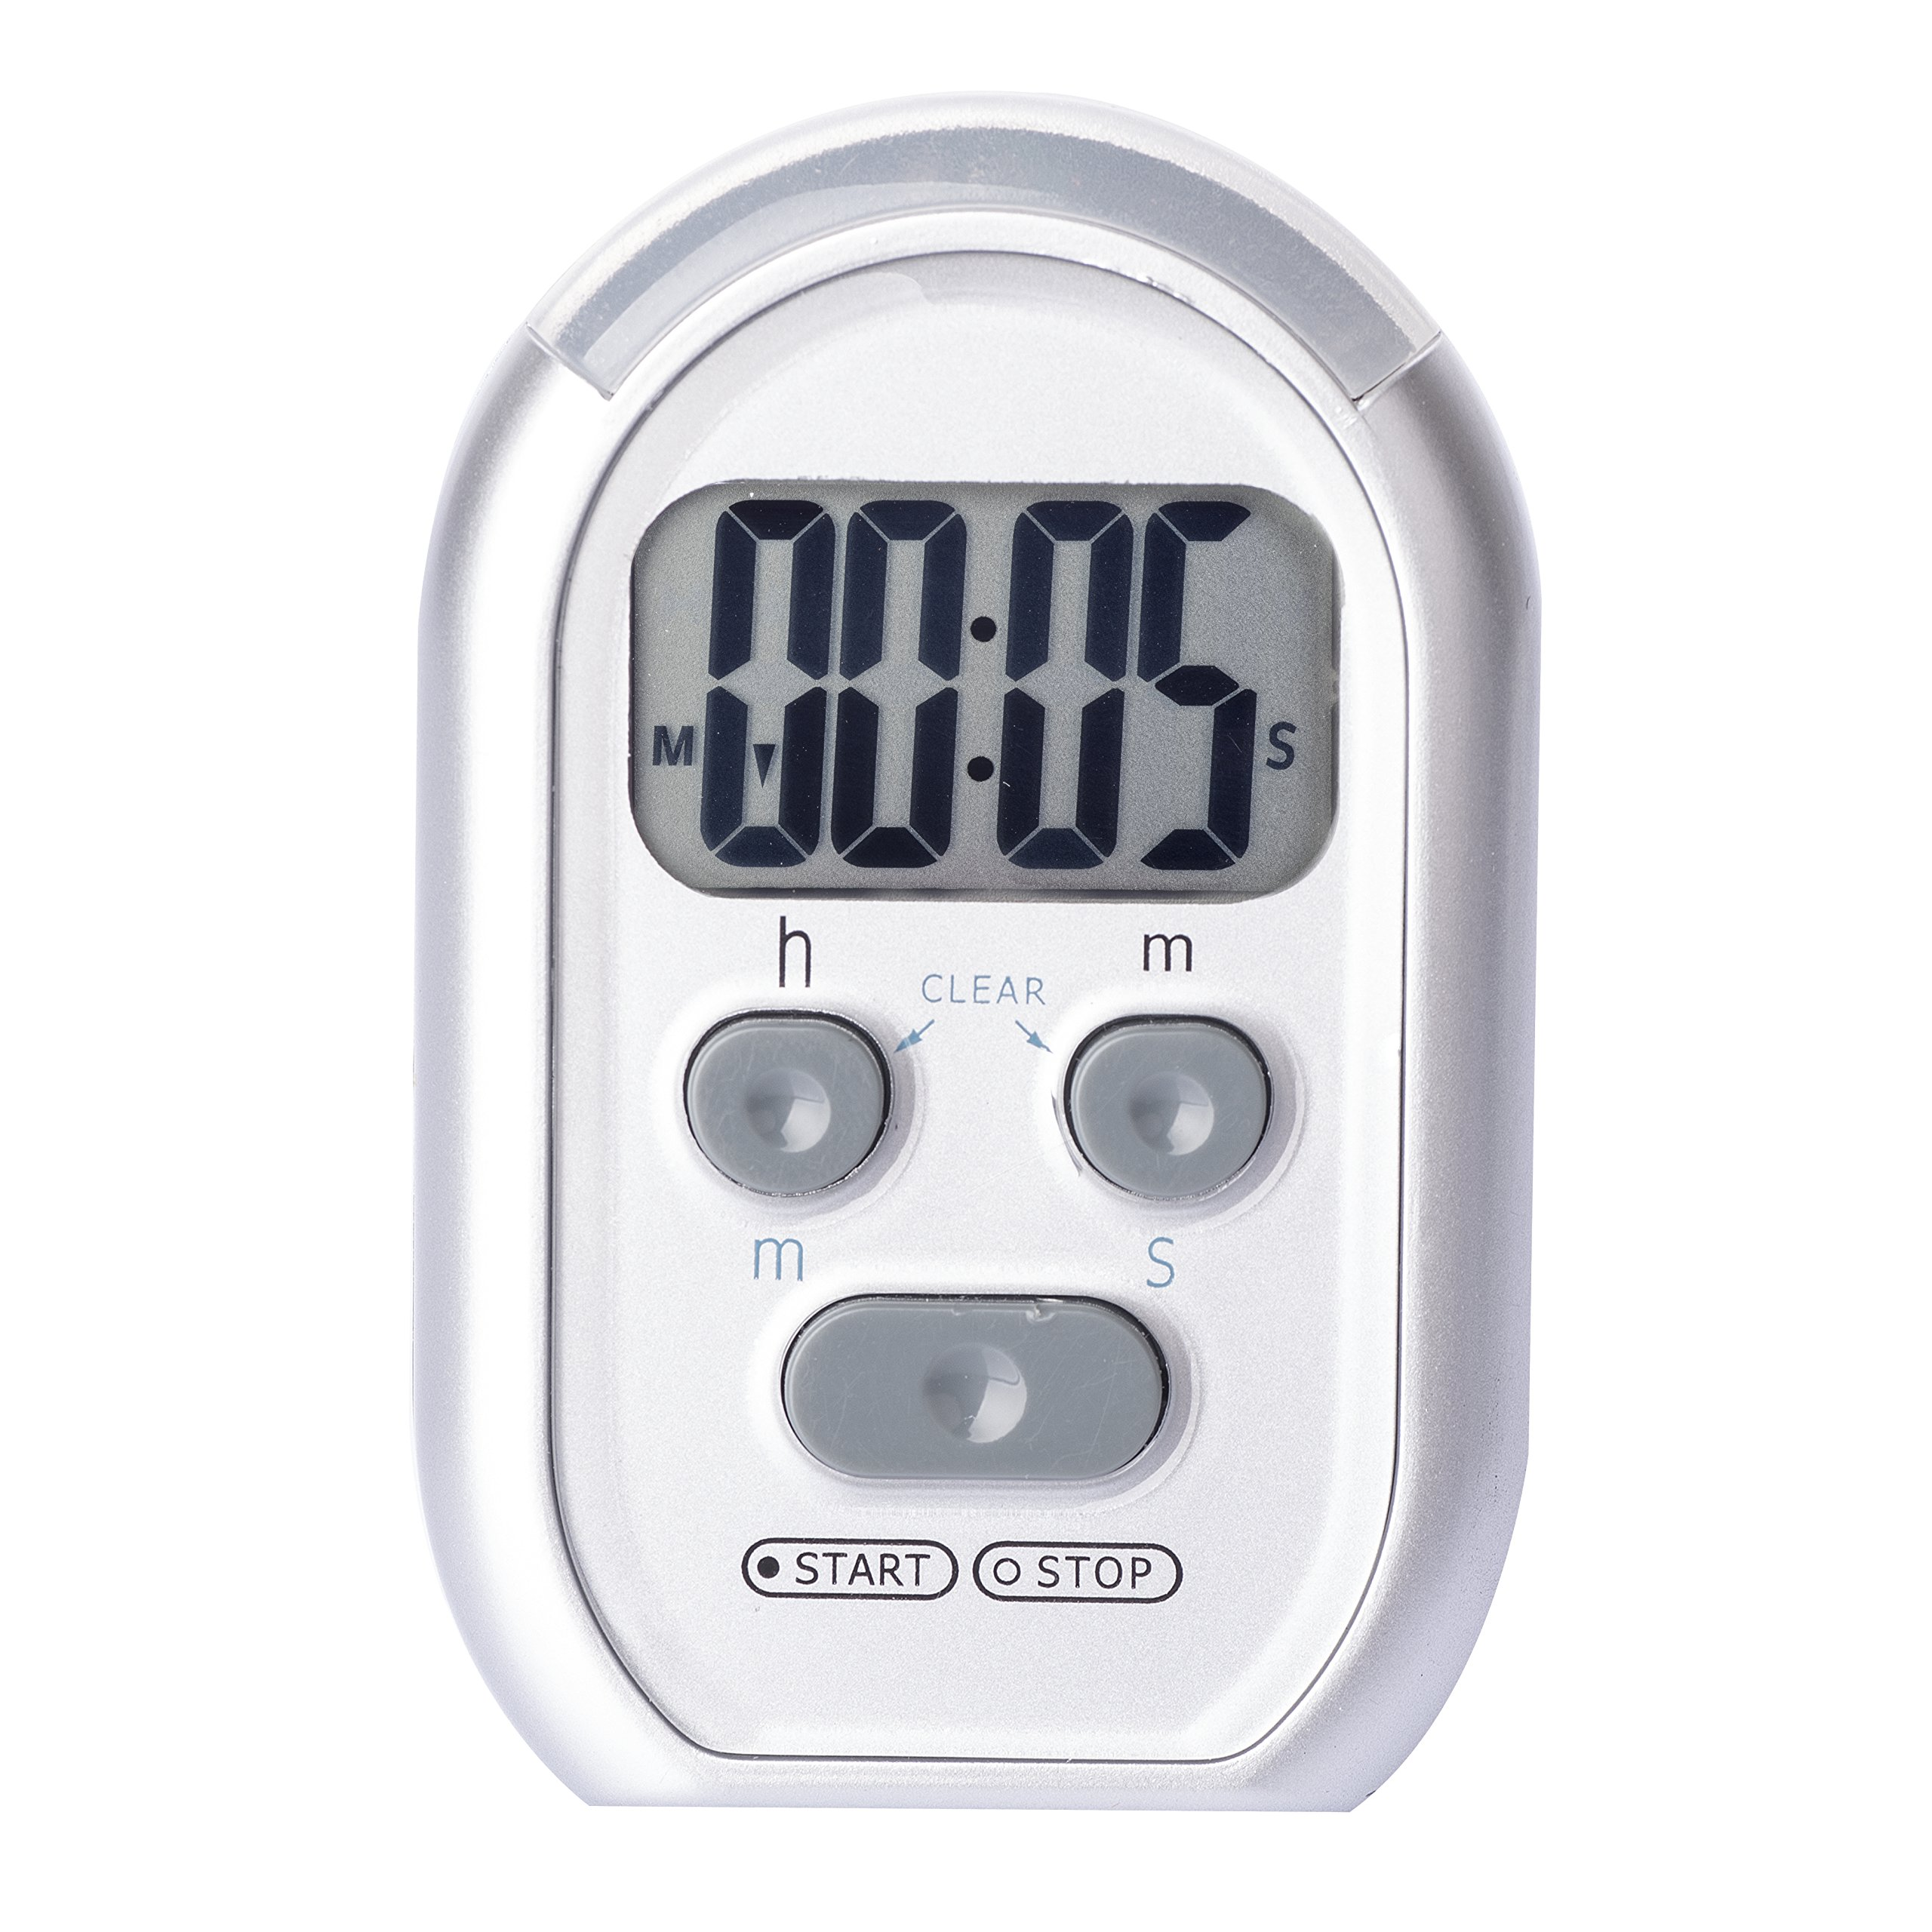 ZYQY x-wlang 3-in-1 Alerts timer 1013 with vibration,beep and flash.(kitchen timer,medical timer,therapeutic timer),silver